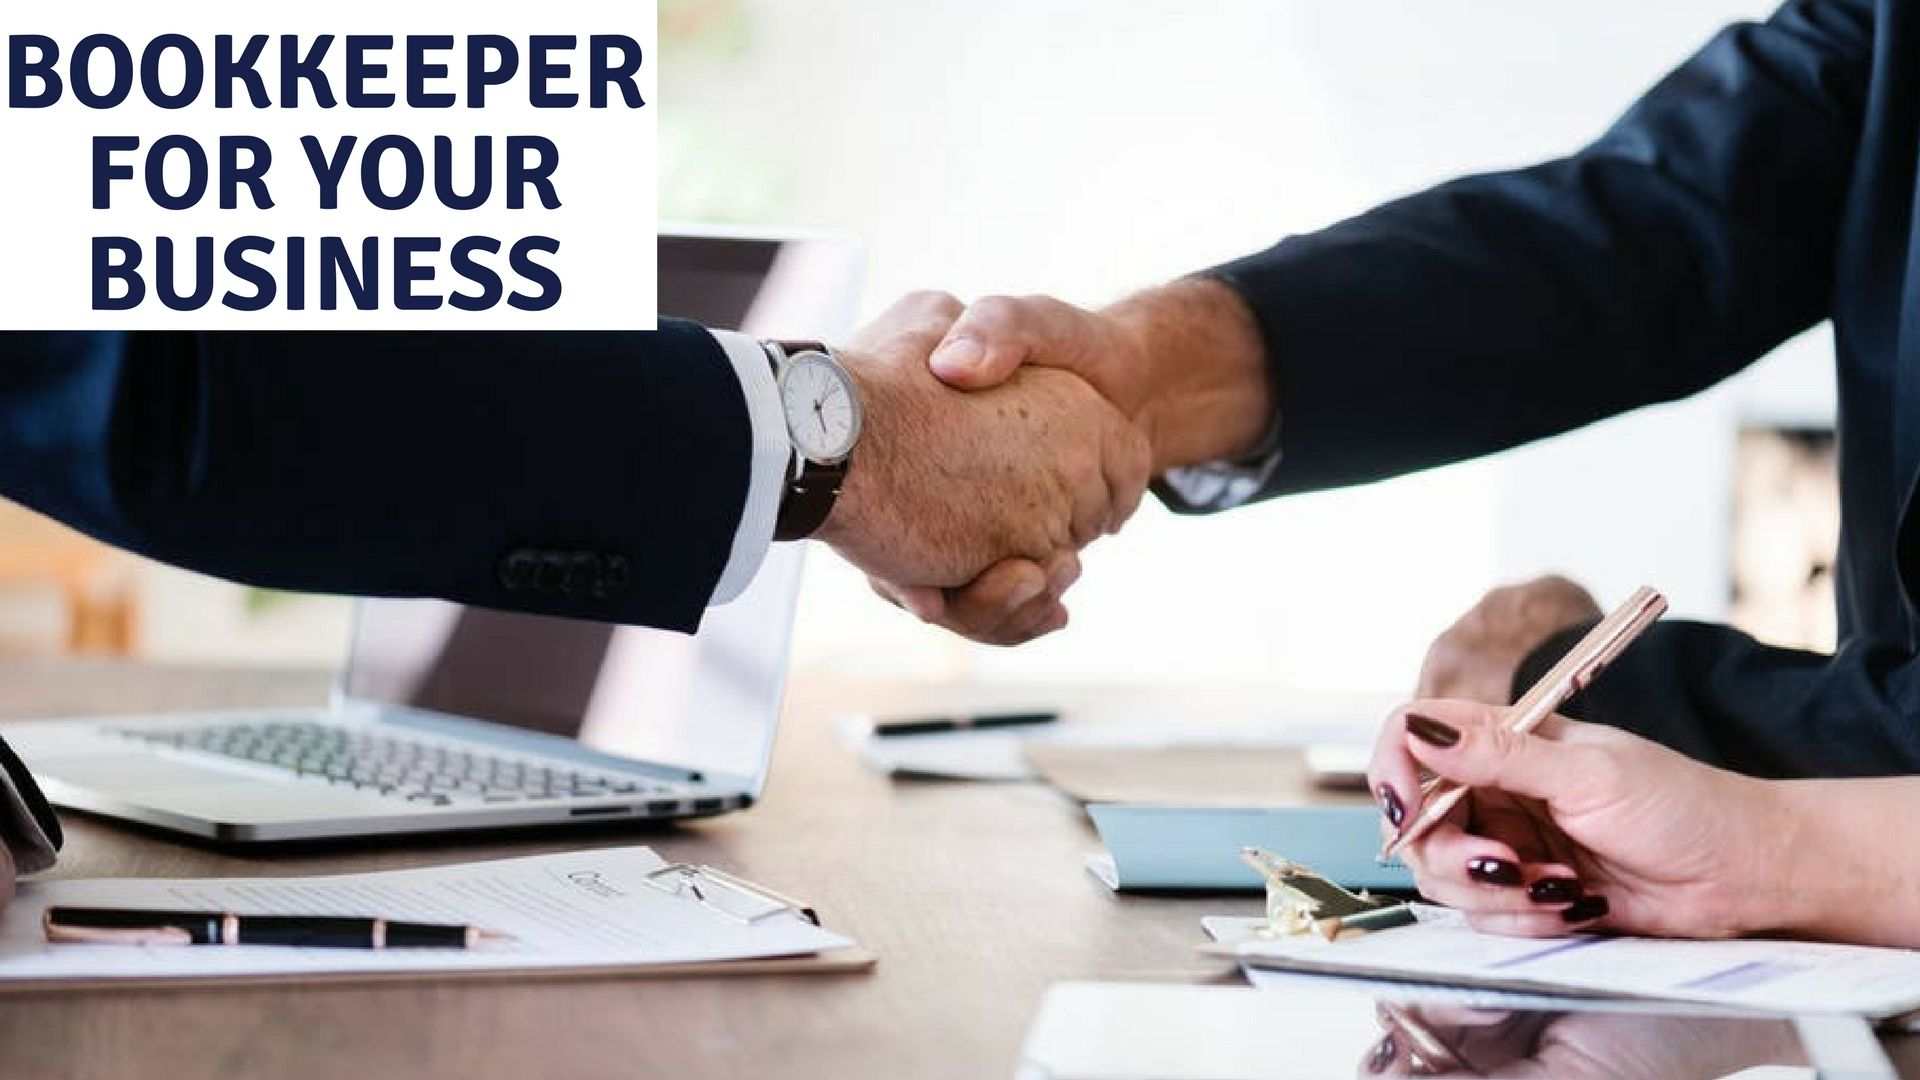 Hiring professional bookkeeping services in Fort Worth can